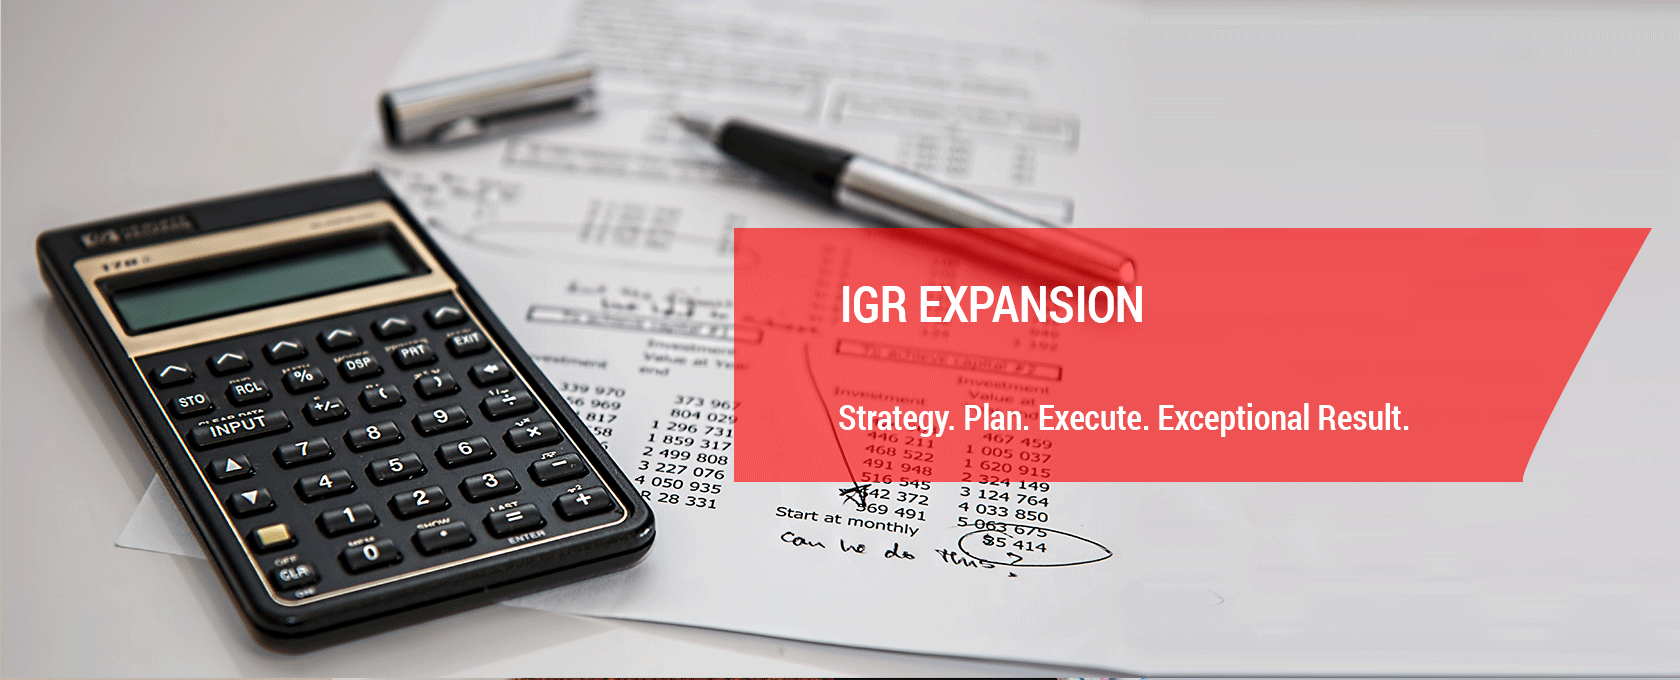 igr expansion